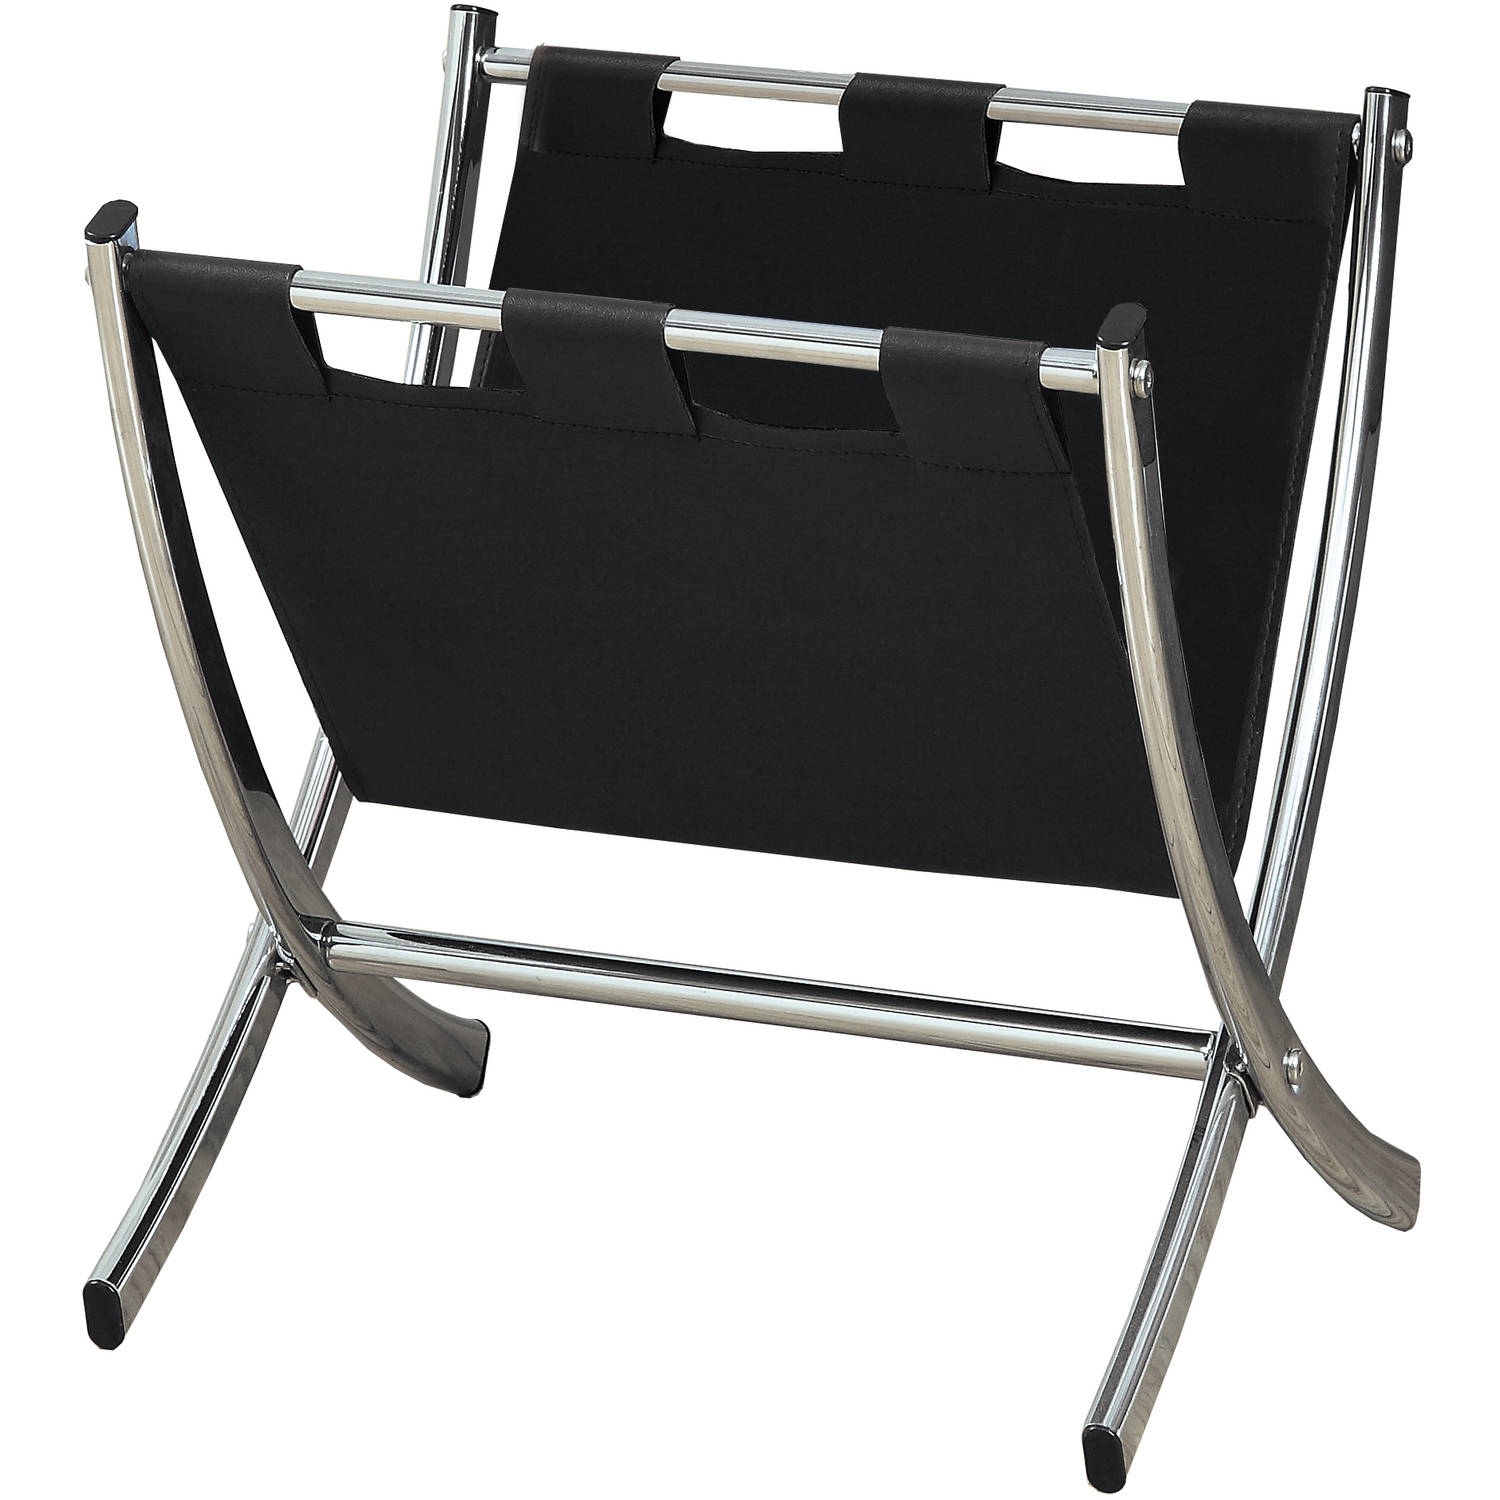 Black Leather-Look Chrome Metal Magazine Rack by Monarch Specialties Inc